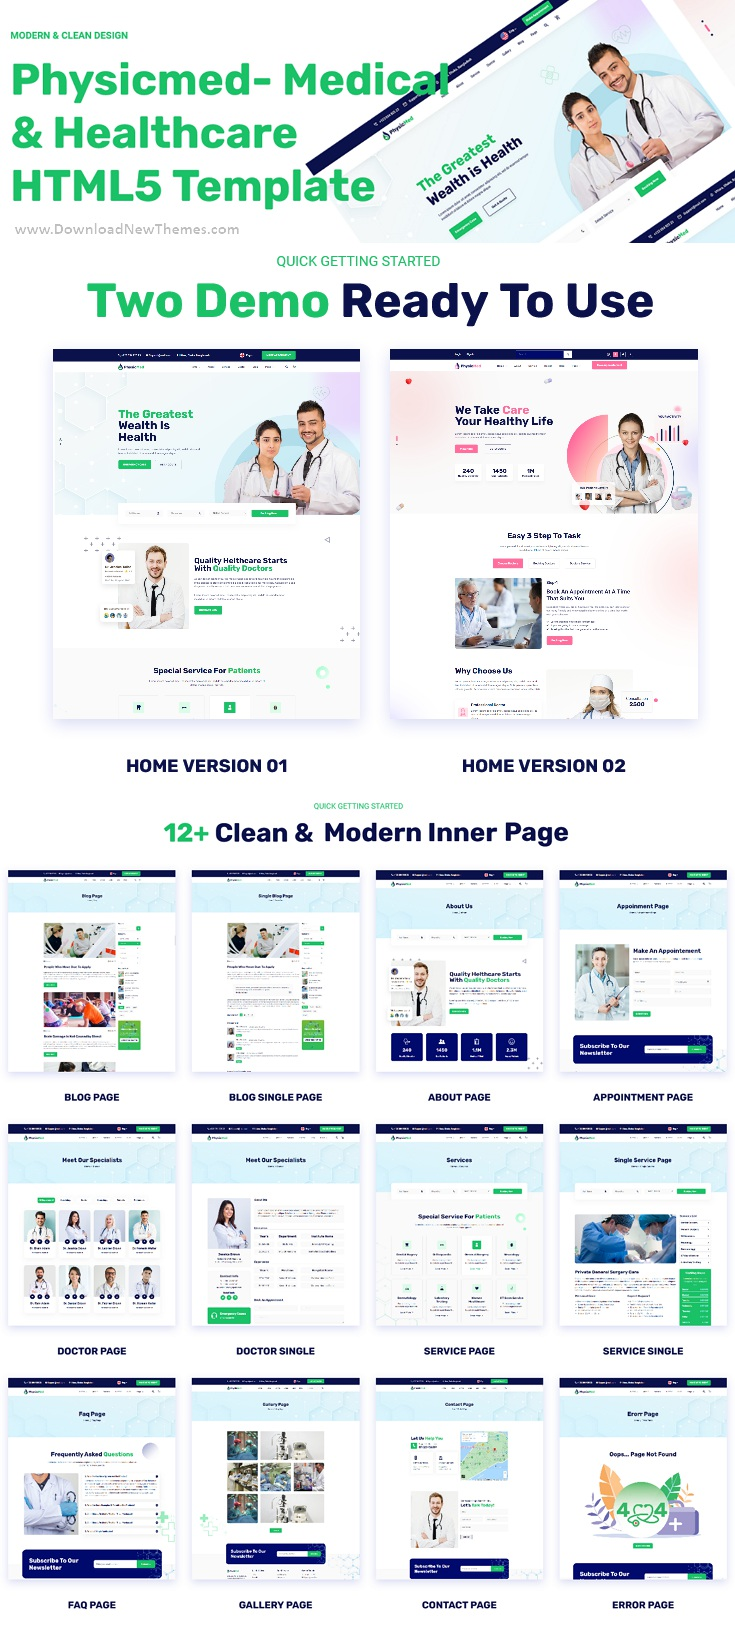 Physicmed - Medical & Healthcare HTML5 Template